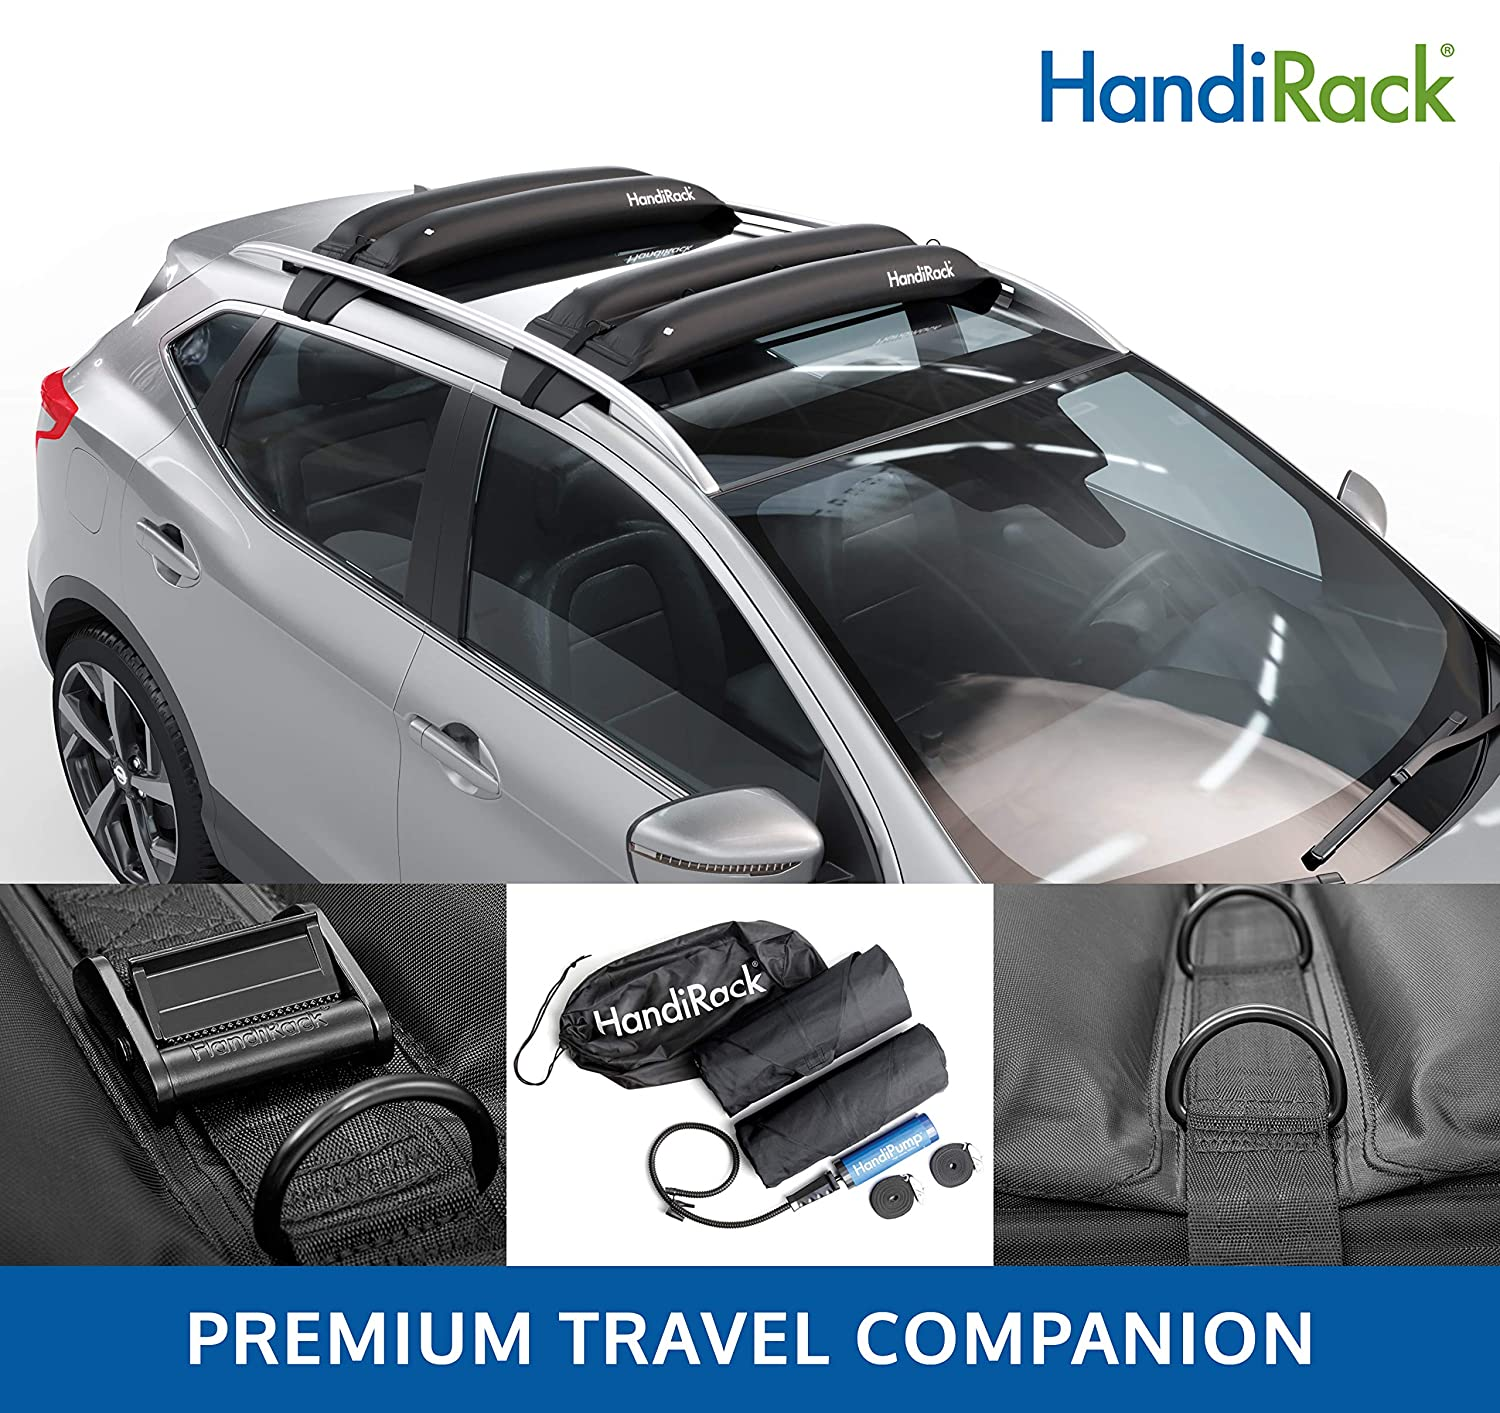 HandiWorld MPG452 Kayaks Paddleboards,Luggage Carry Canoes Universal roof rack bars -FITS MOST VEHICLES /& SUVs- Best Inflatable roof top cargo carrier Surfboards HandiRack 80kg//175lbs load capacity